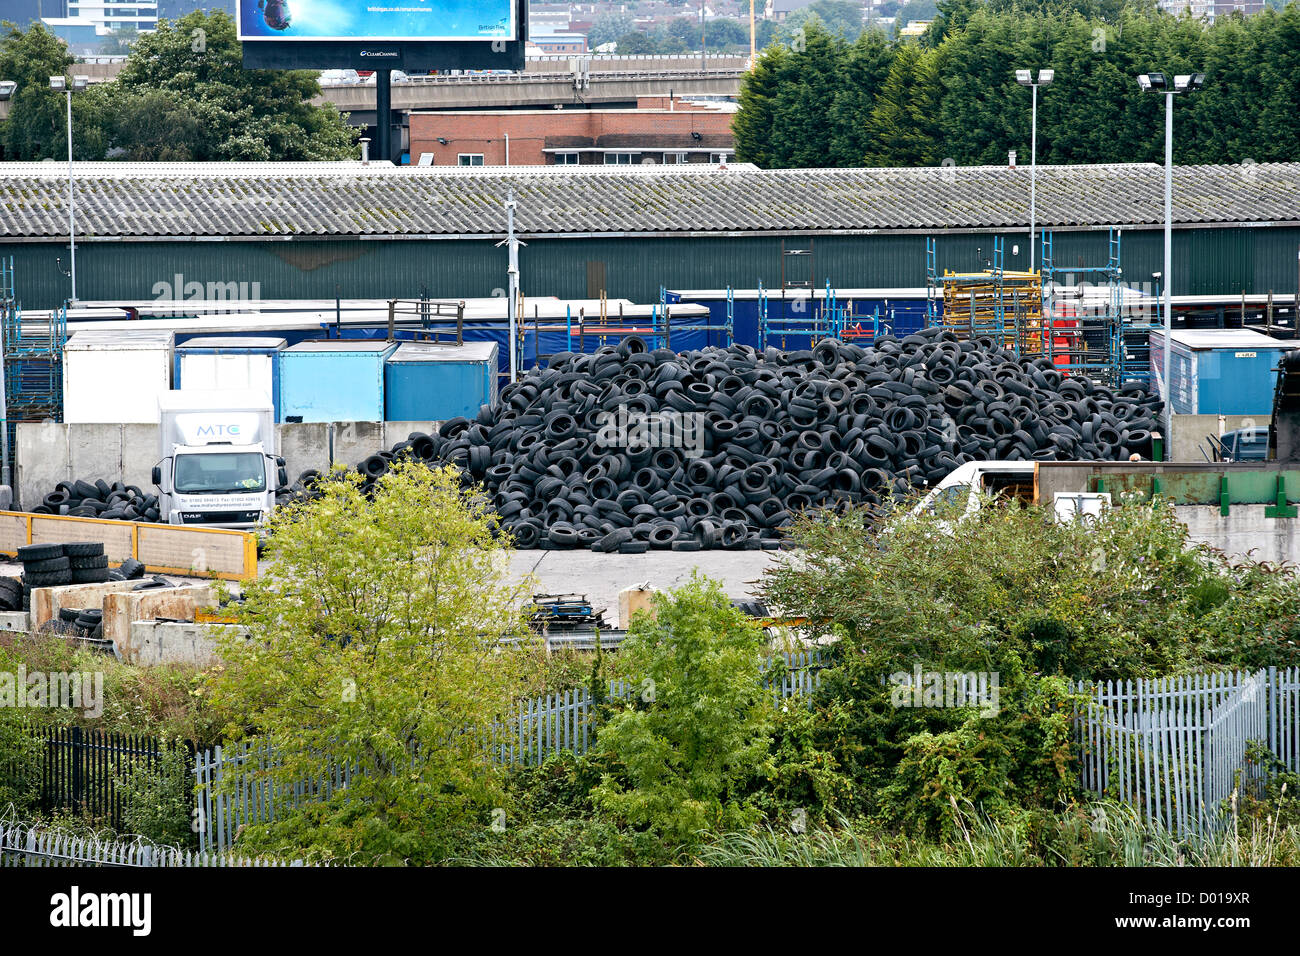 Old used car tyres tires piled on an industrial estate wait recycling into new products. - Stock Image